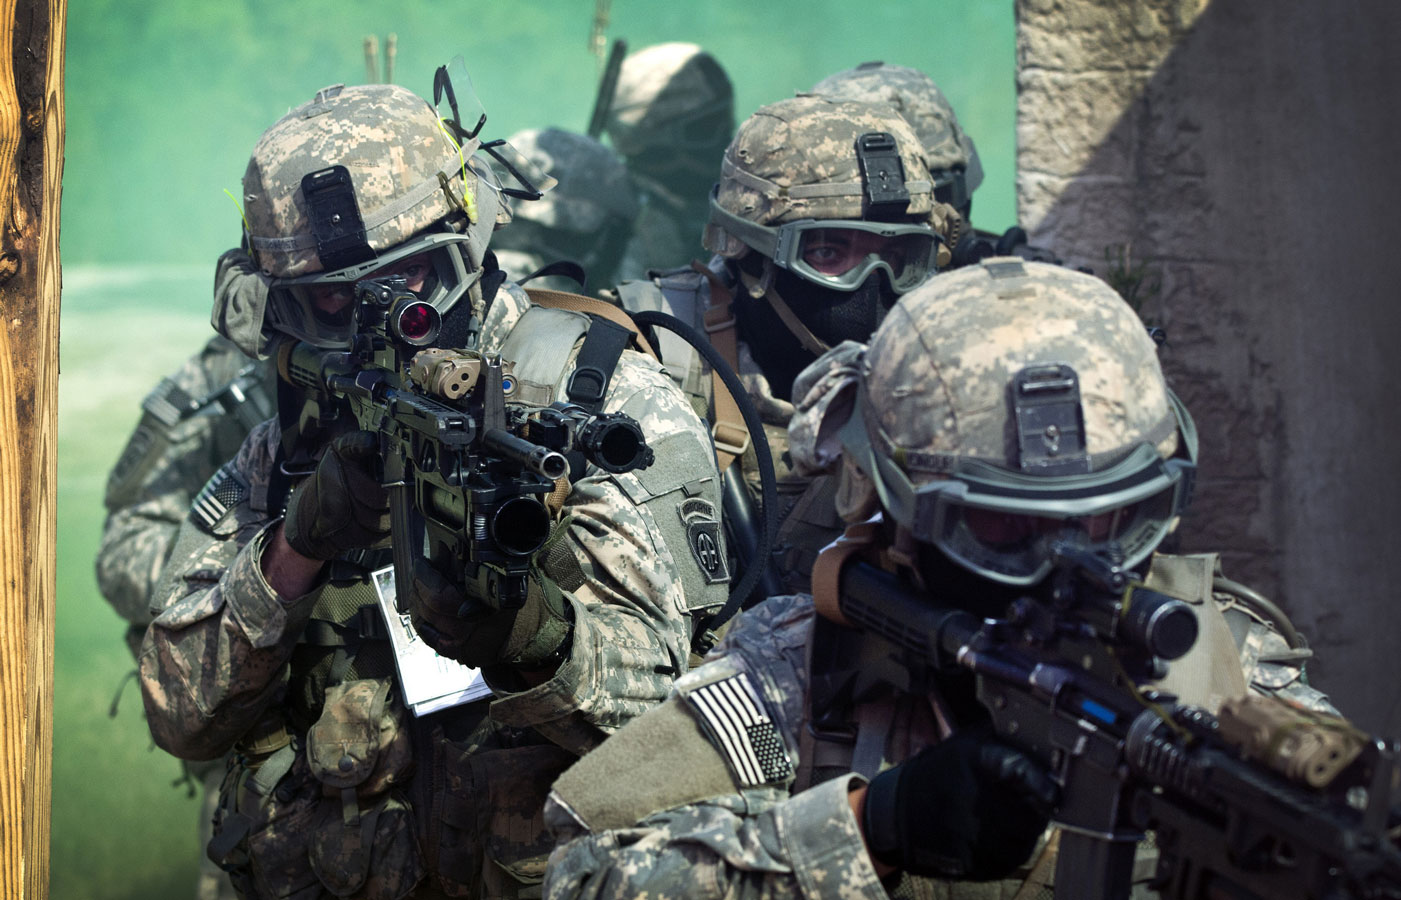 Paratroopers assigned to 1st Battalion, 508th Parachute Infantry Regiment, 4th Brigade Combat Team, 82nd Airborne Division, prepare to enter a building as they conduct close quarters combat training during an air assault mission, Sept. 26.